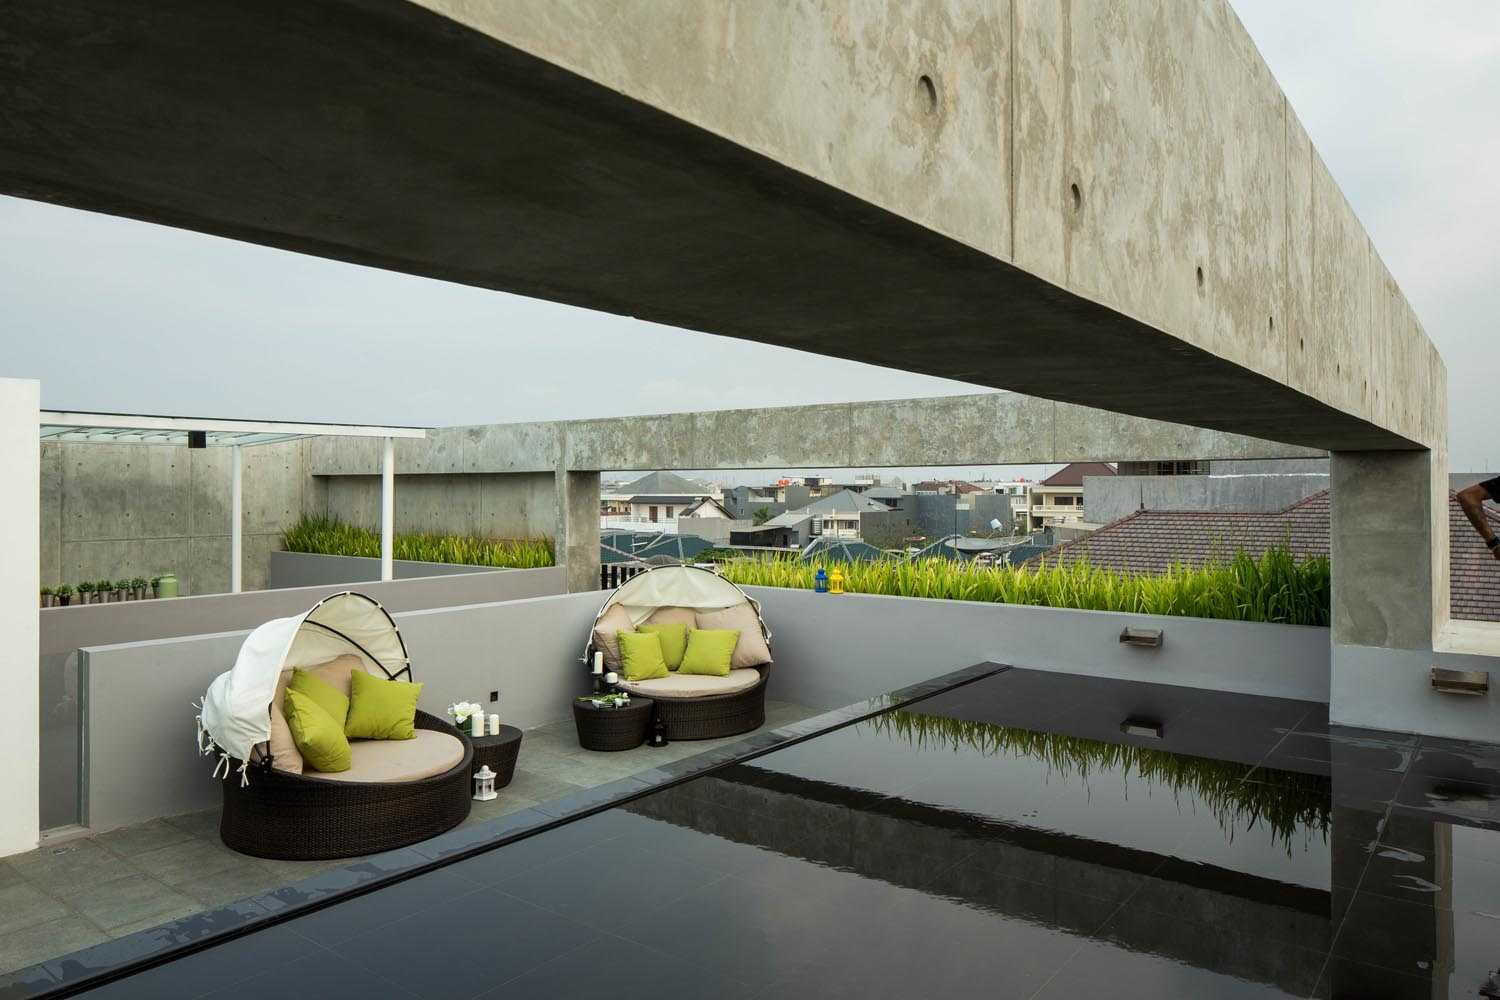 Dp+Hs Architects S+I House Jakarta, Indonesia Jakarta, Indonesia Rooftop Area Kontemporer,industrial,modern  12037